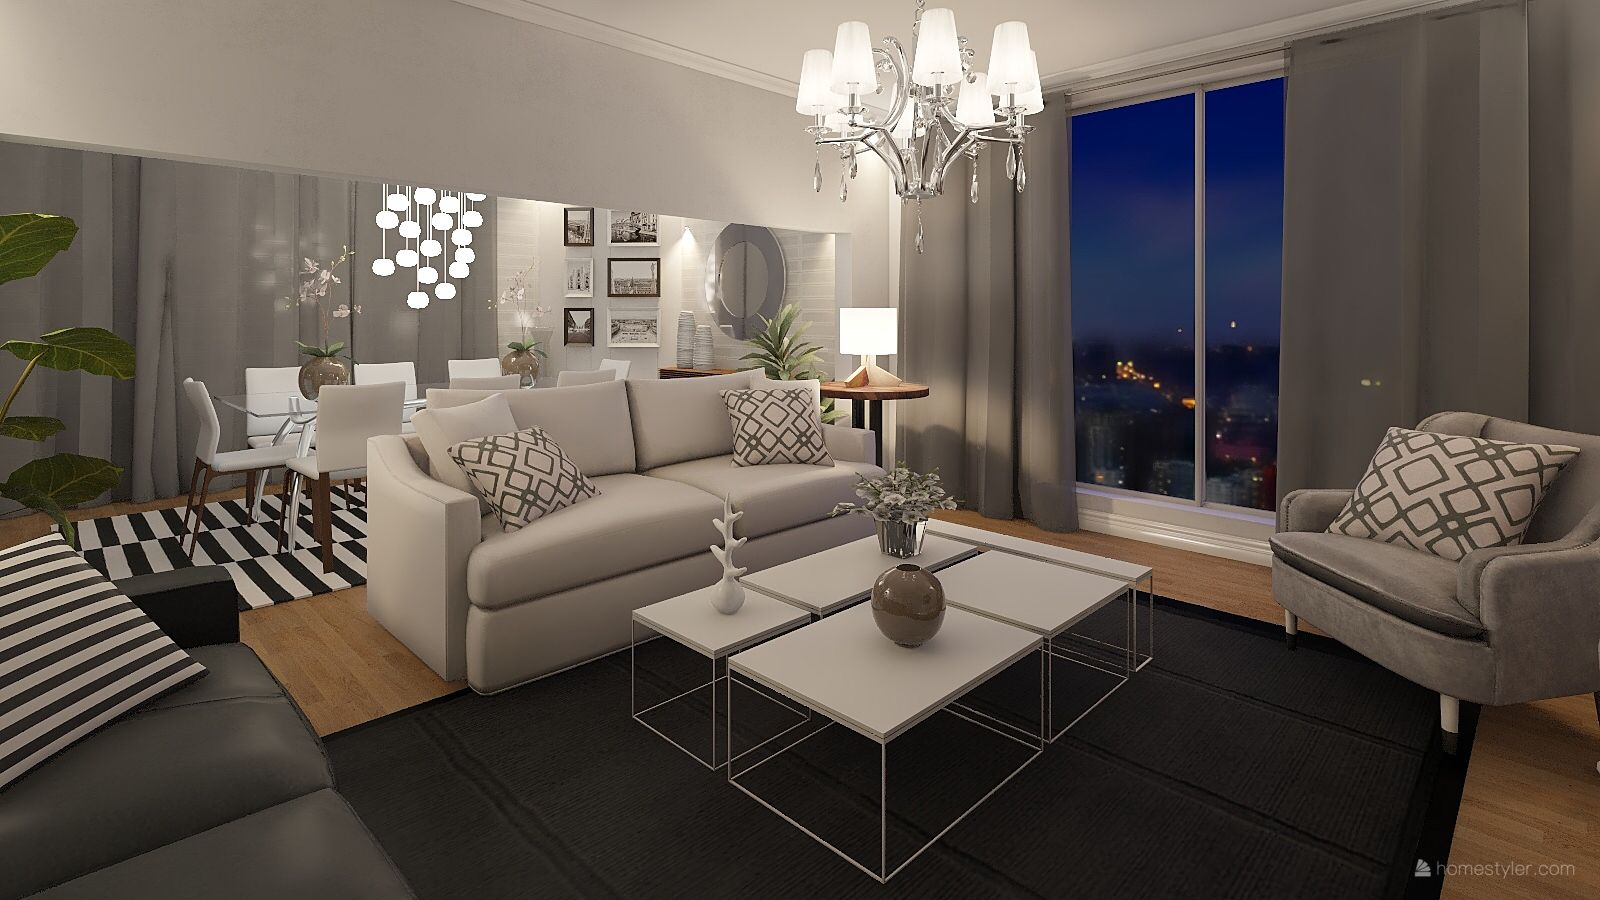 Night View From The Penthouse Living Room Decor Room Decor Home Decor